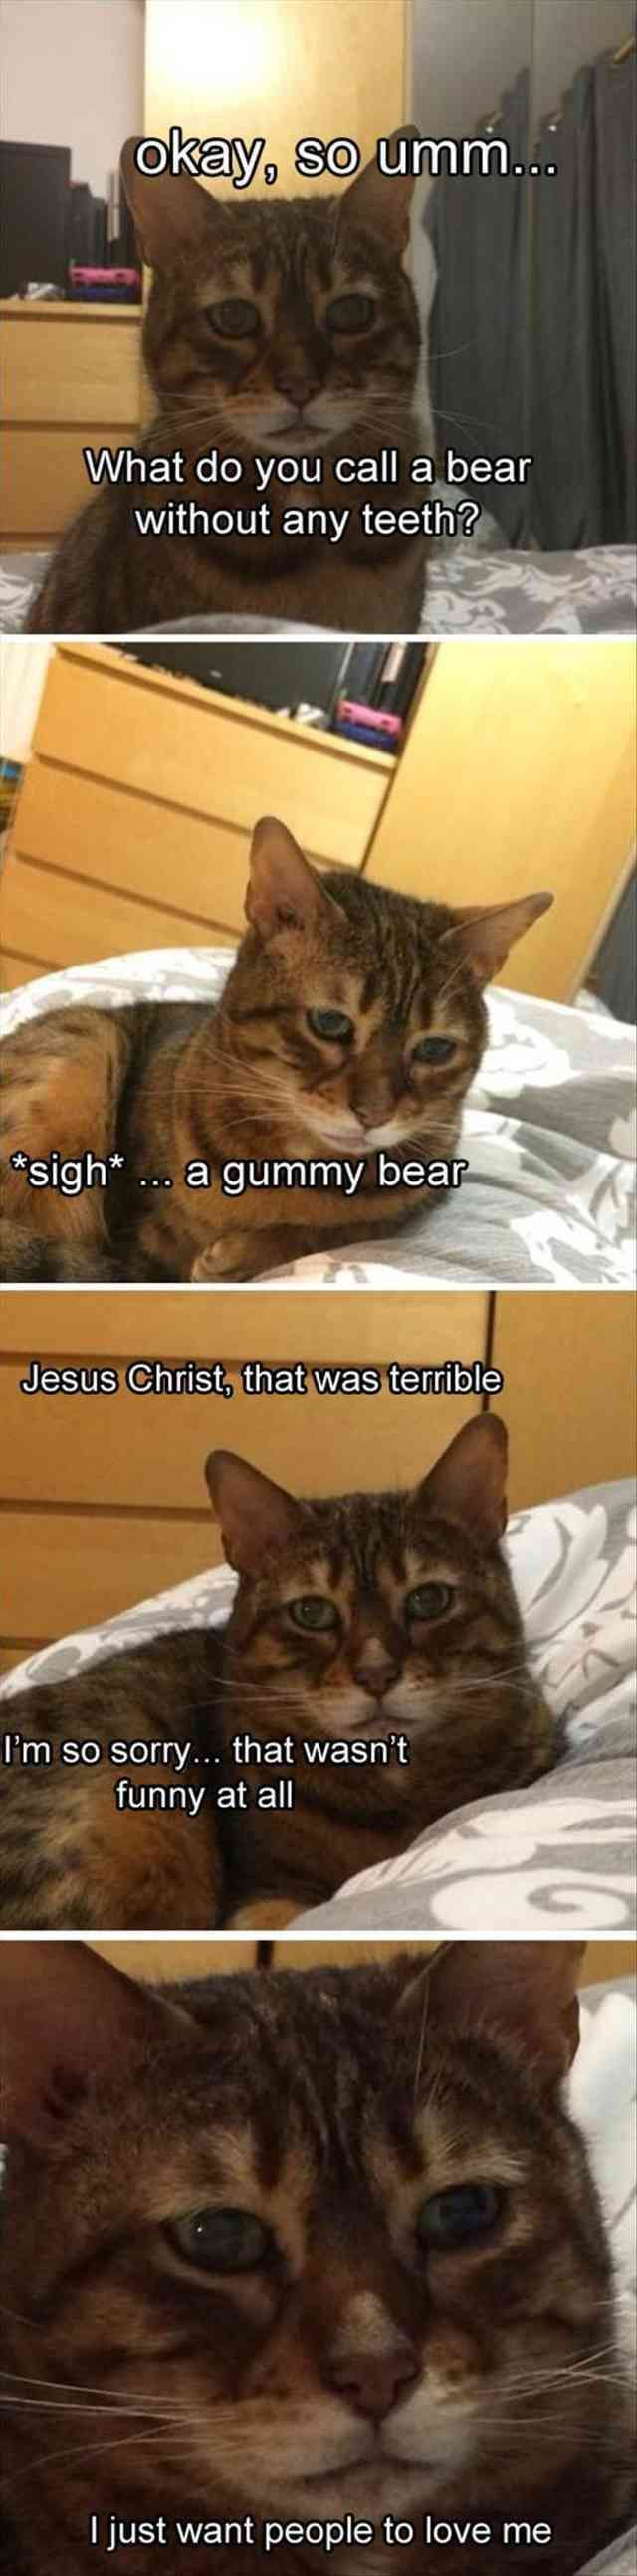 Cat Kitten Joke Humour Image Meme Okav So Umm What Do You Call A Bear Without Any Teet Sigh A Gummy Bea Jes Funny Animals Funny Cat Memes Funny Pictures